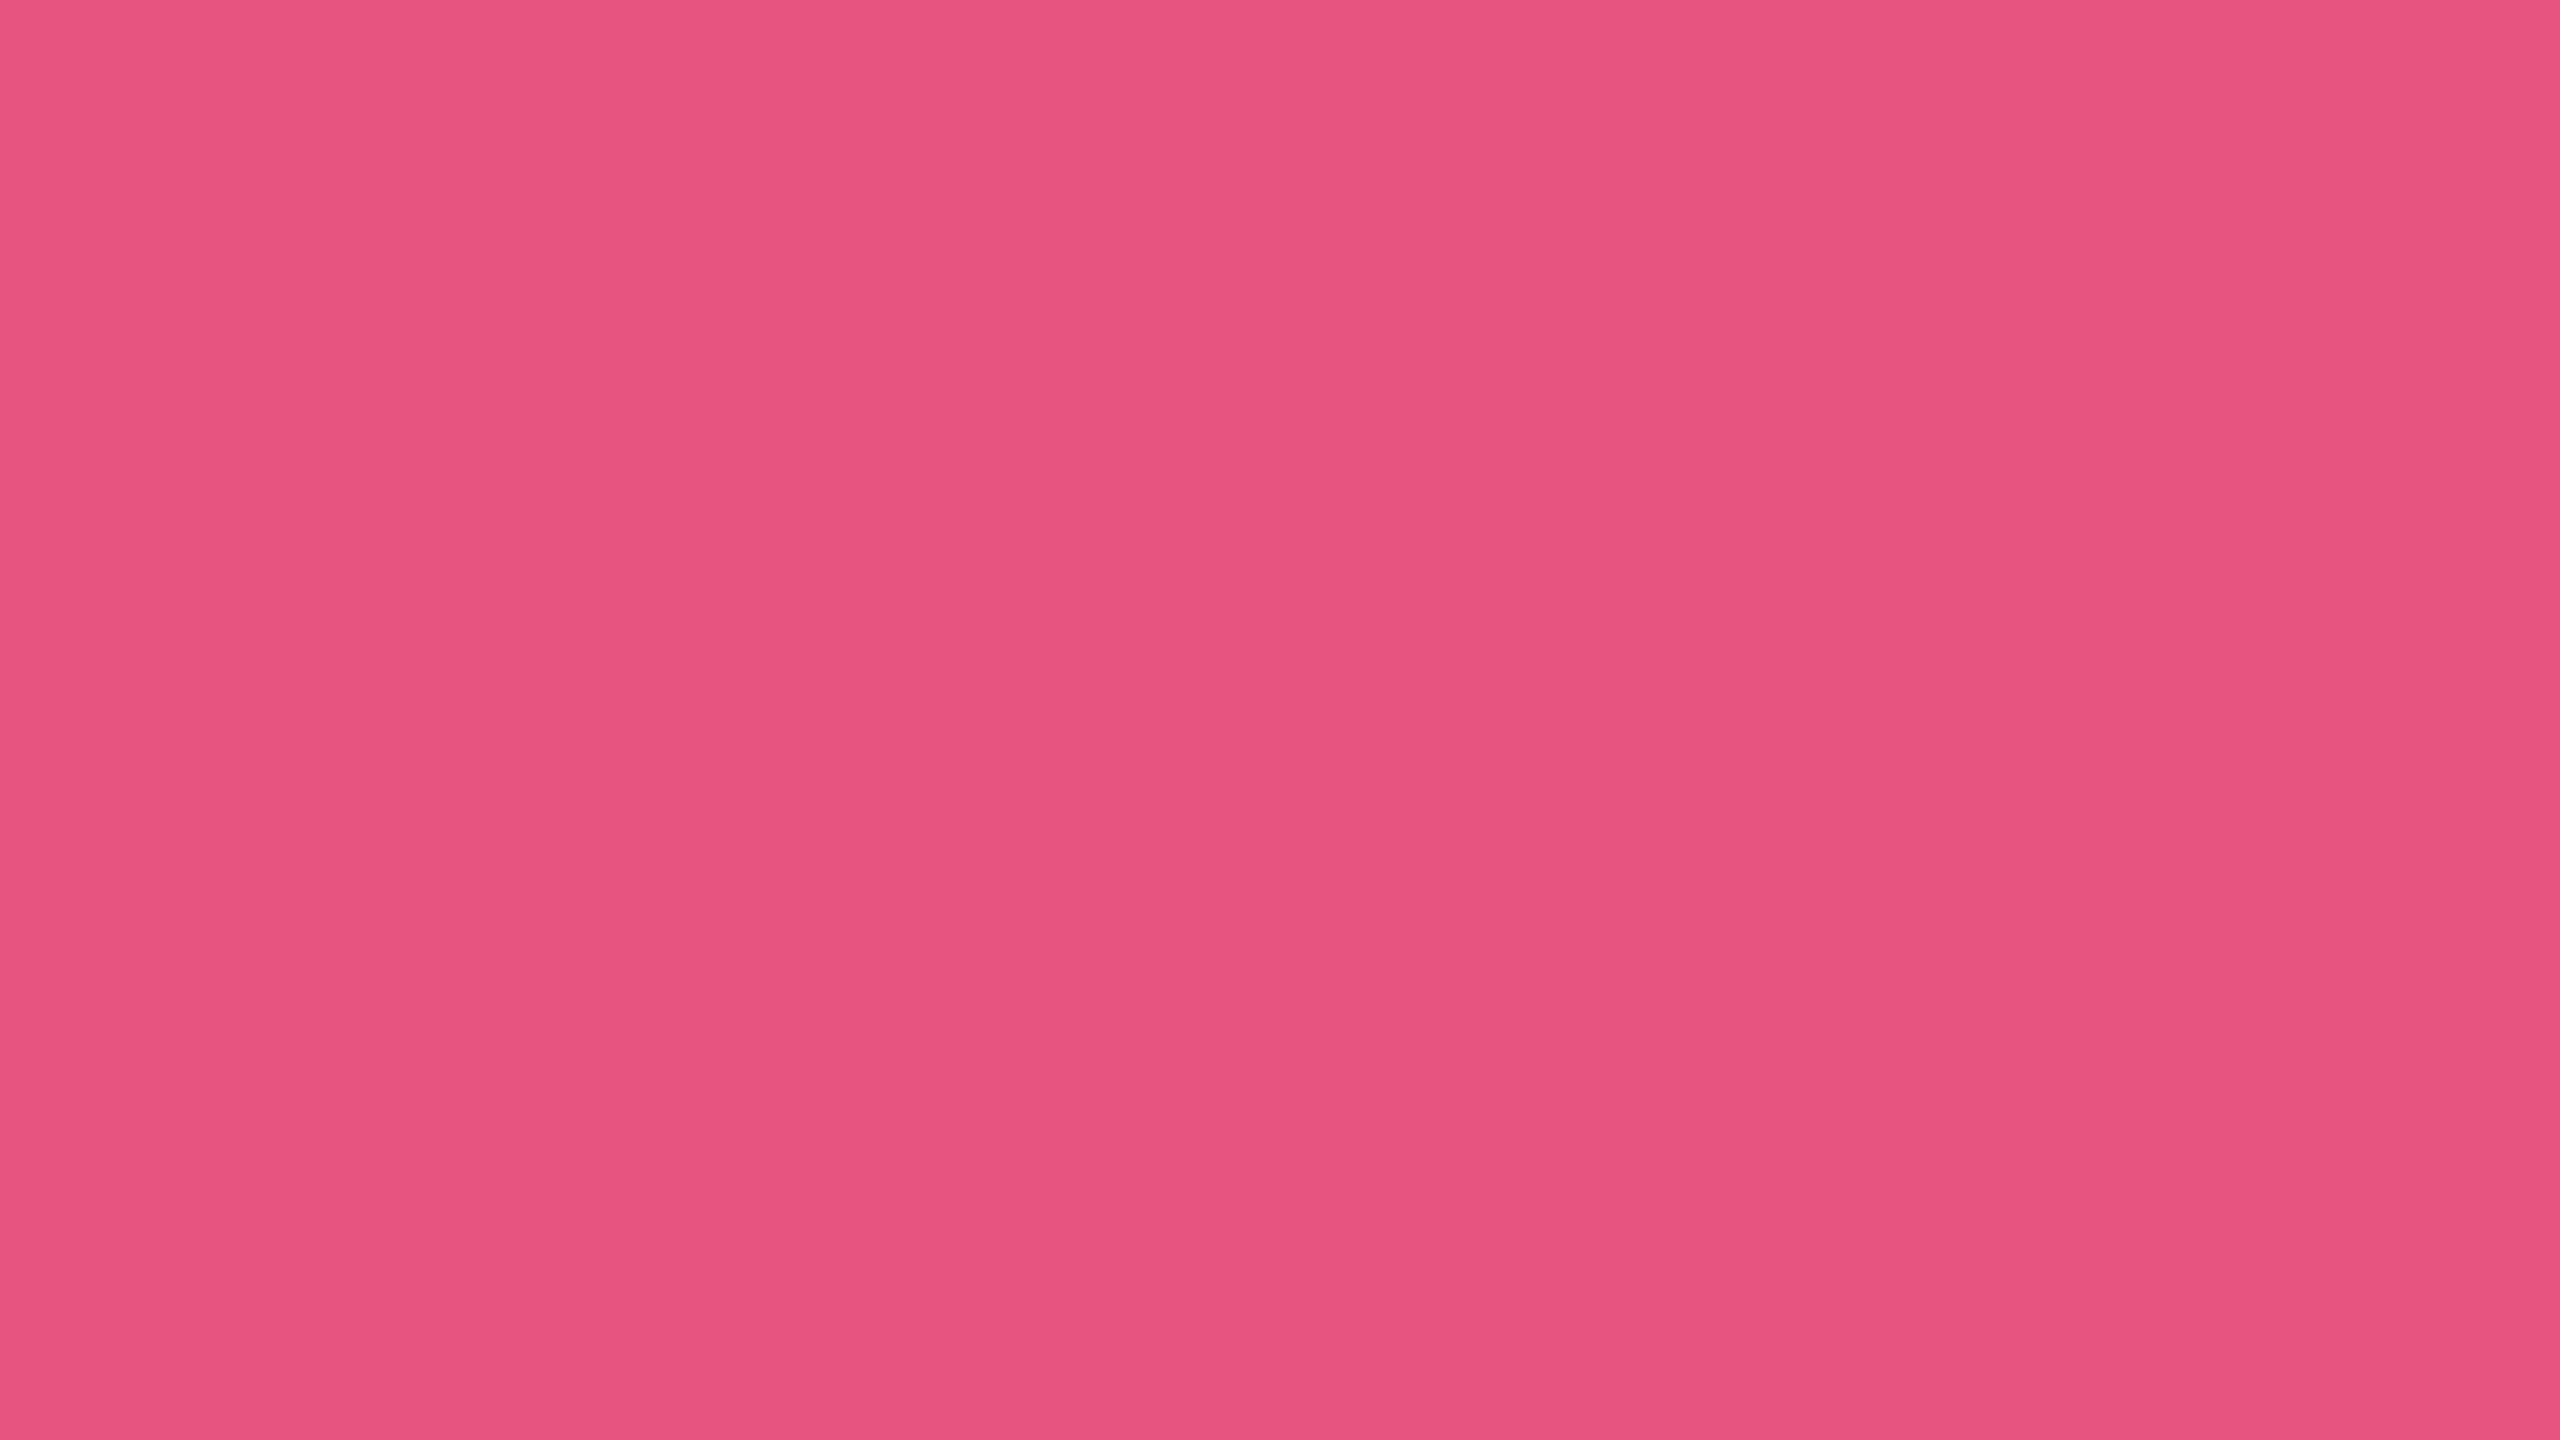 2560x1440 Dark Pink Solid Color Background